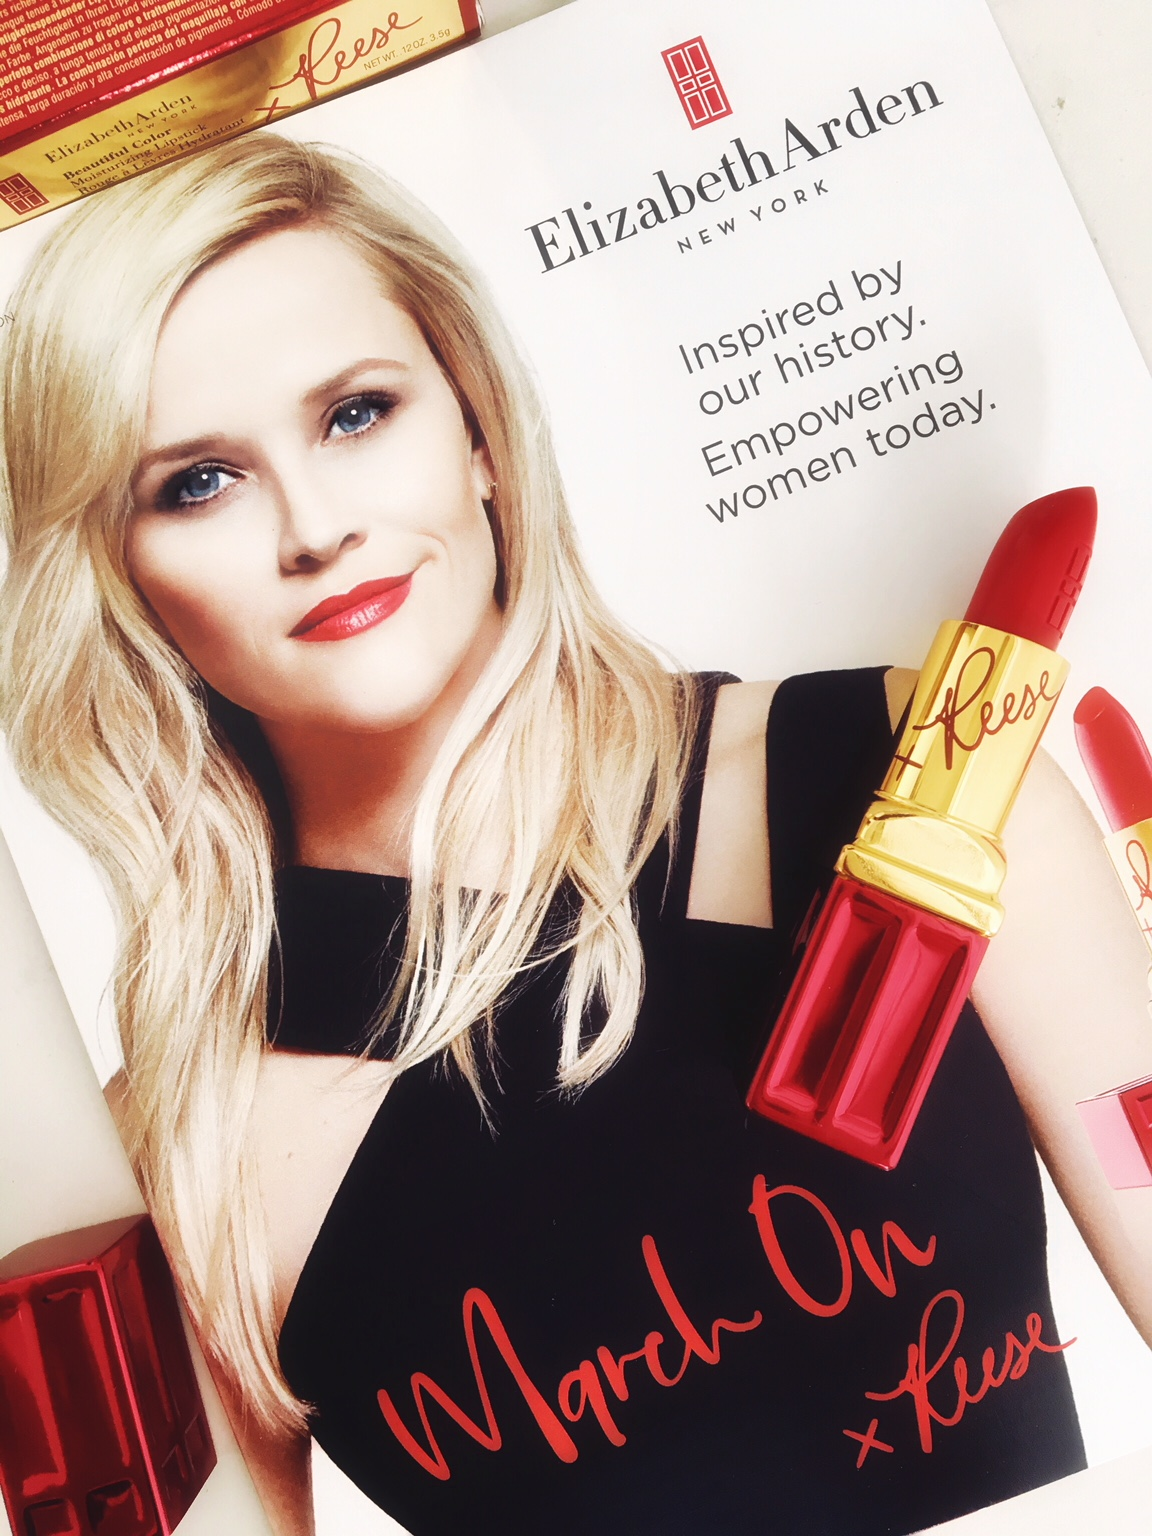 Elizabeth Arden Reese Witherspoon March On For Women In My Bag